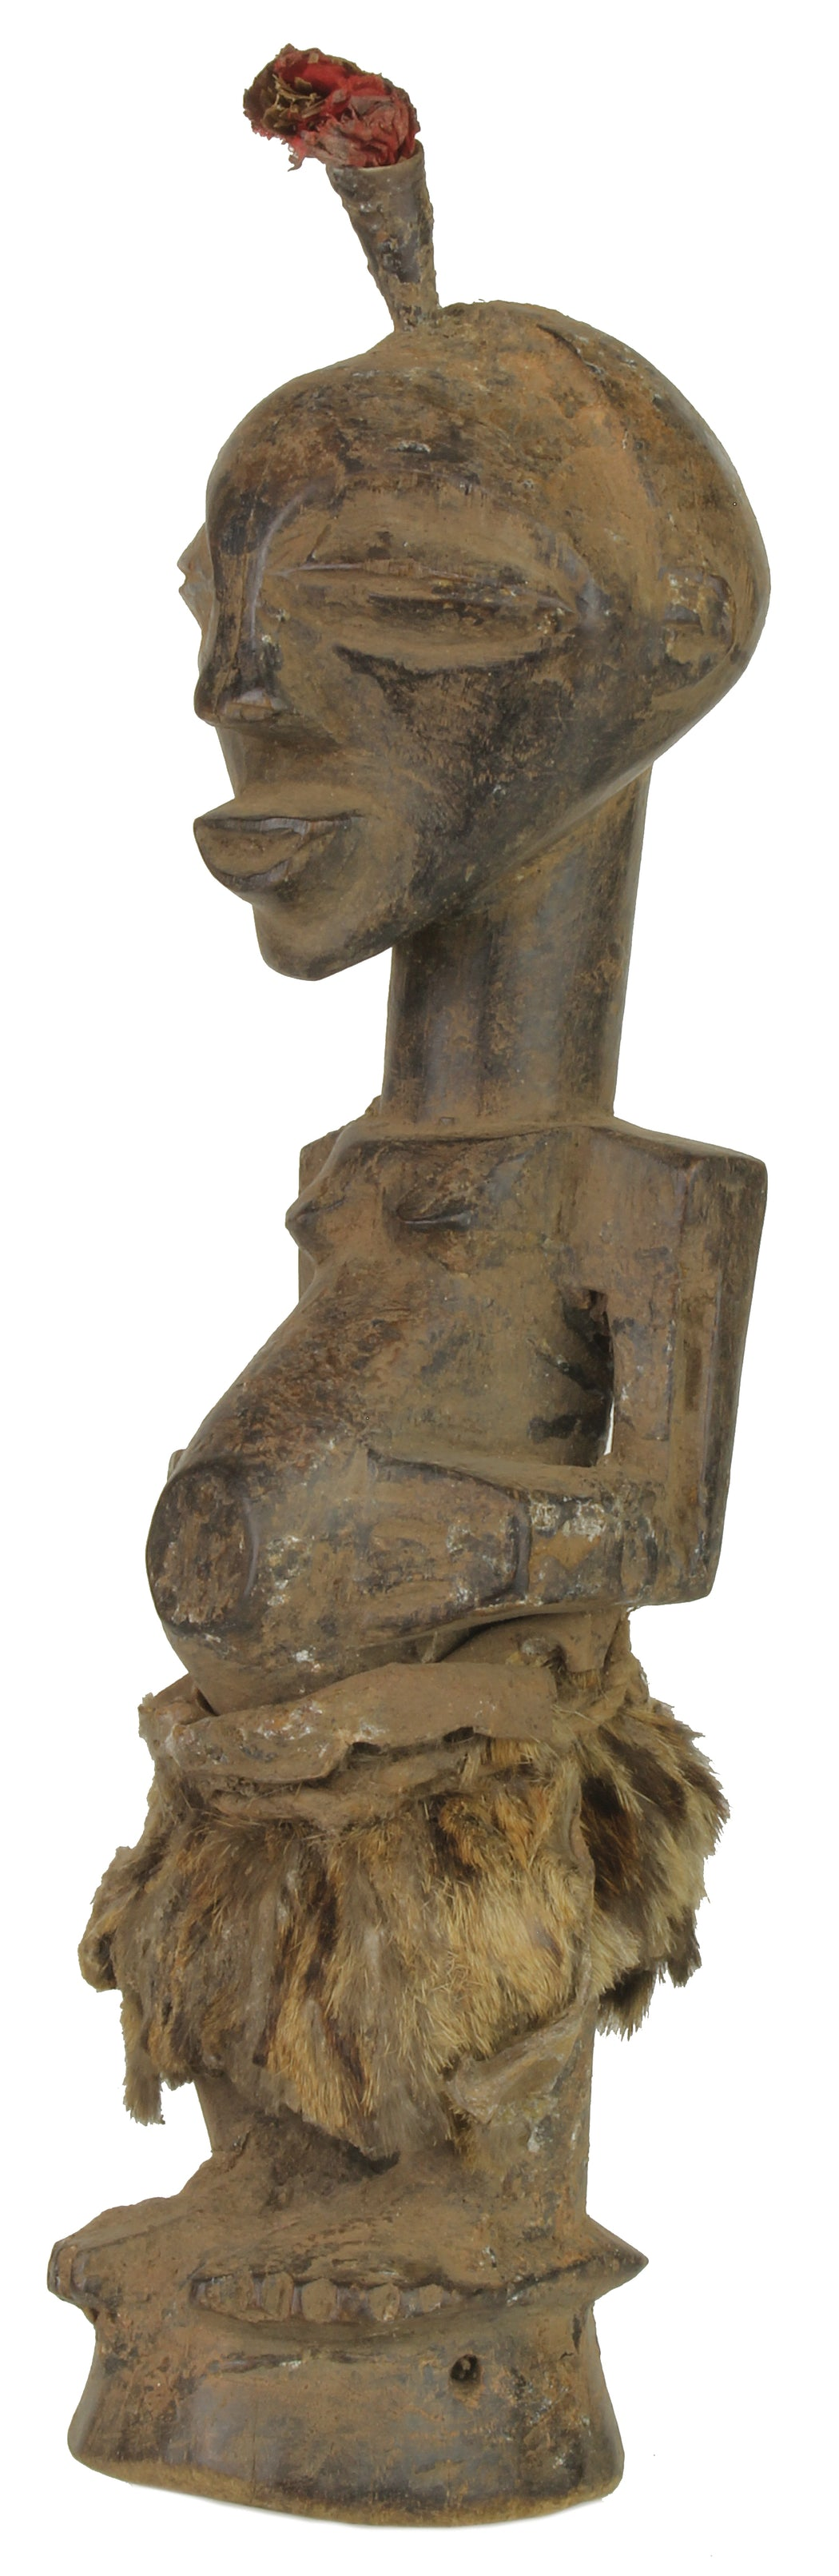 Songye Tribal Power Figure Statue of Congo | 11""